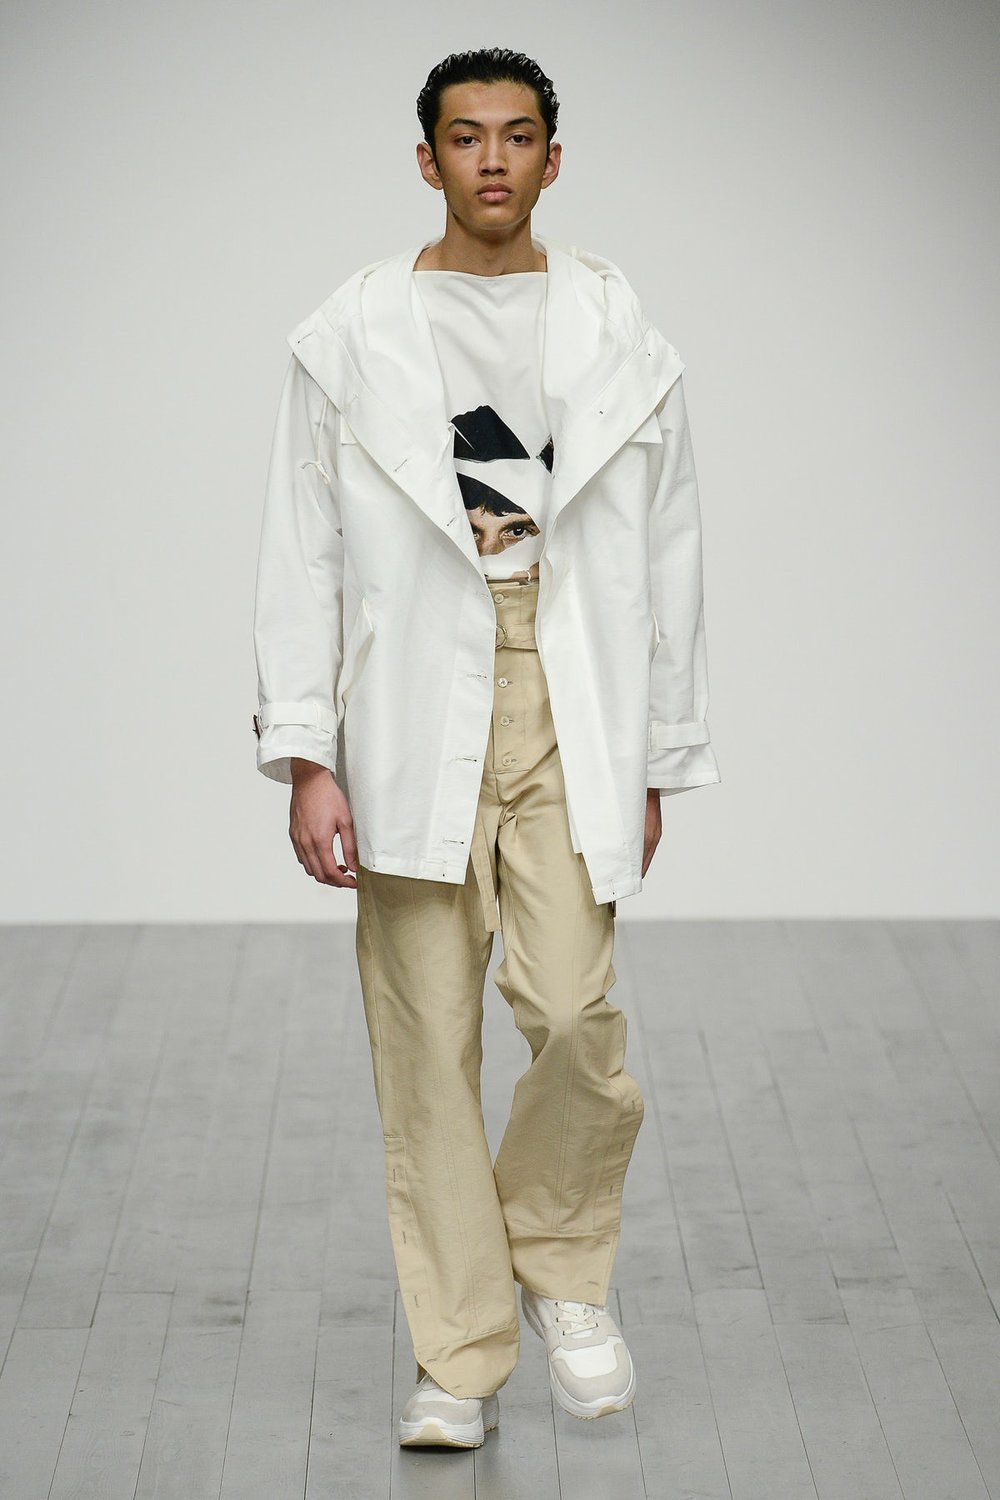 alex_mullins_look_19_menswear_autumn_2018.jpeg